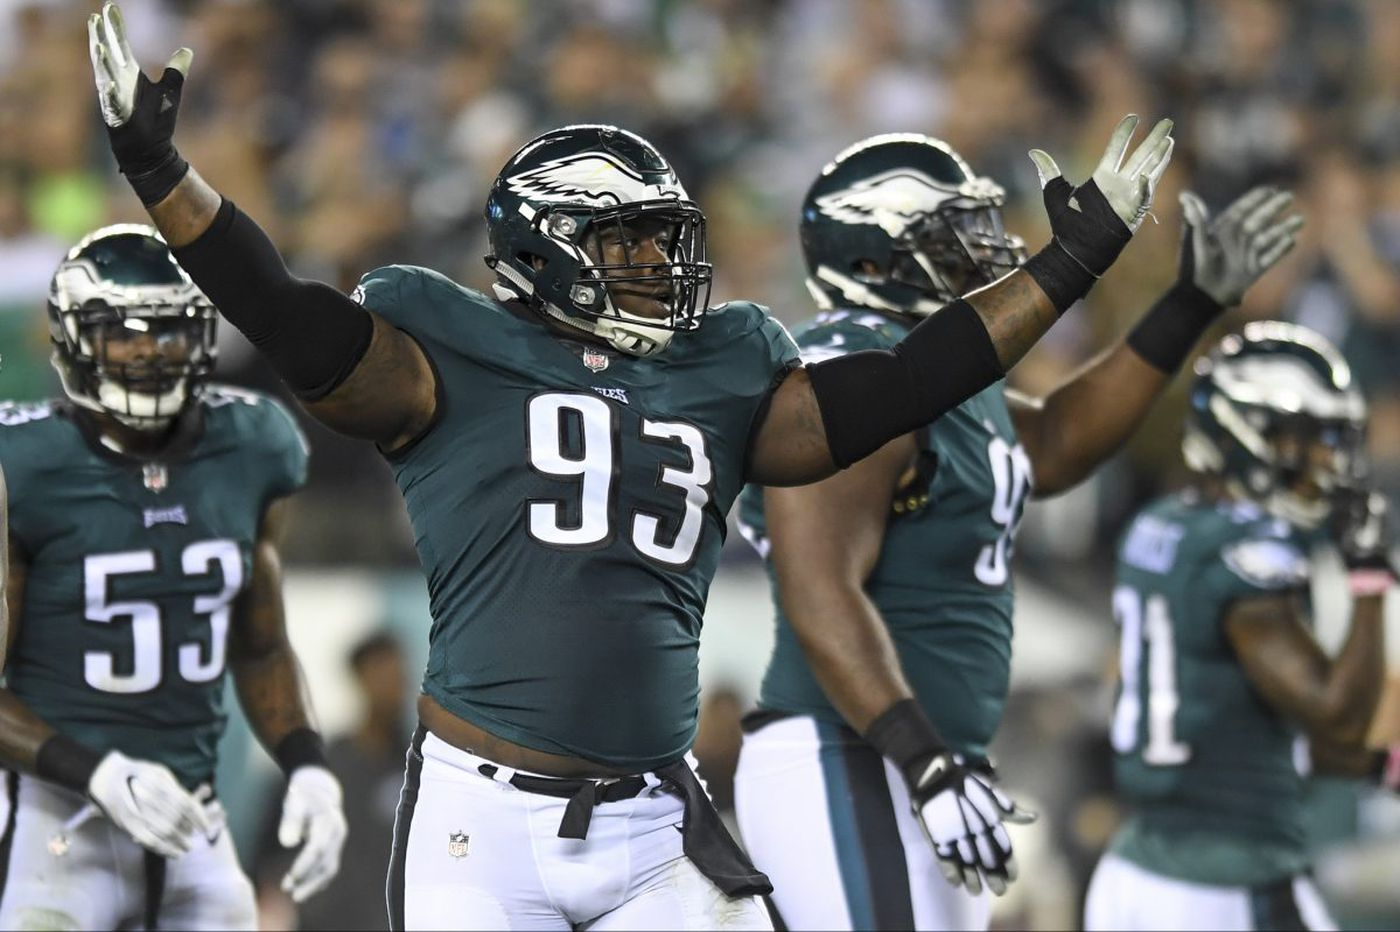 Eagles DT Tim Jernigan reportedly has surgery on herniated disk